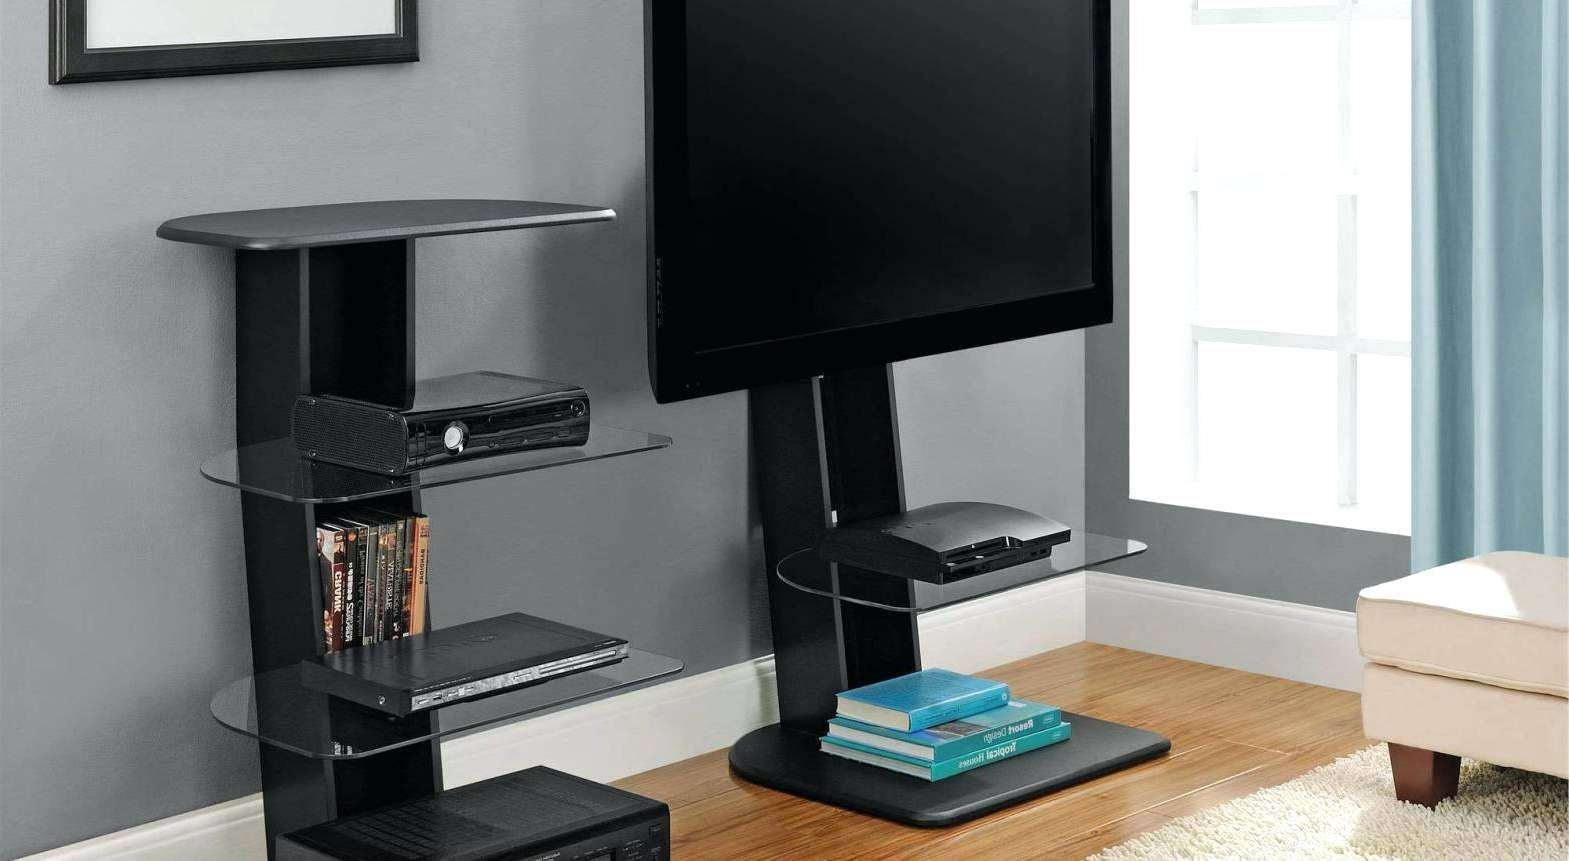 Tv Stand : 24 Inch Tv Stand Corner Stands Awesome Black For 24 For 24 Inch Tv Stands (View 10 of 15)